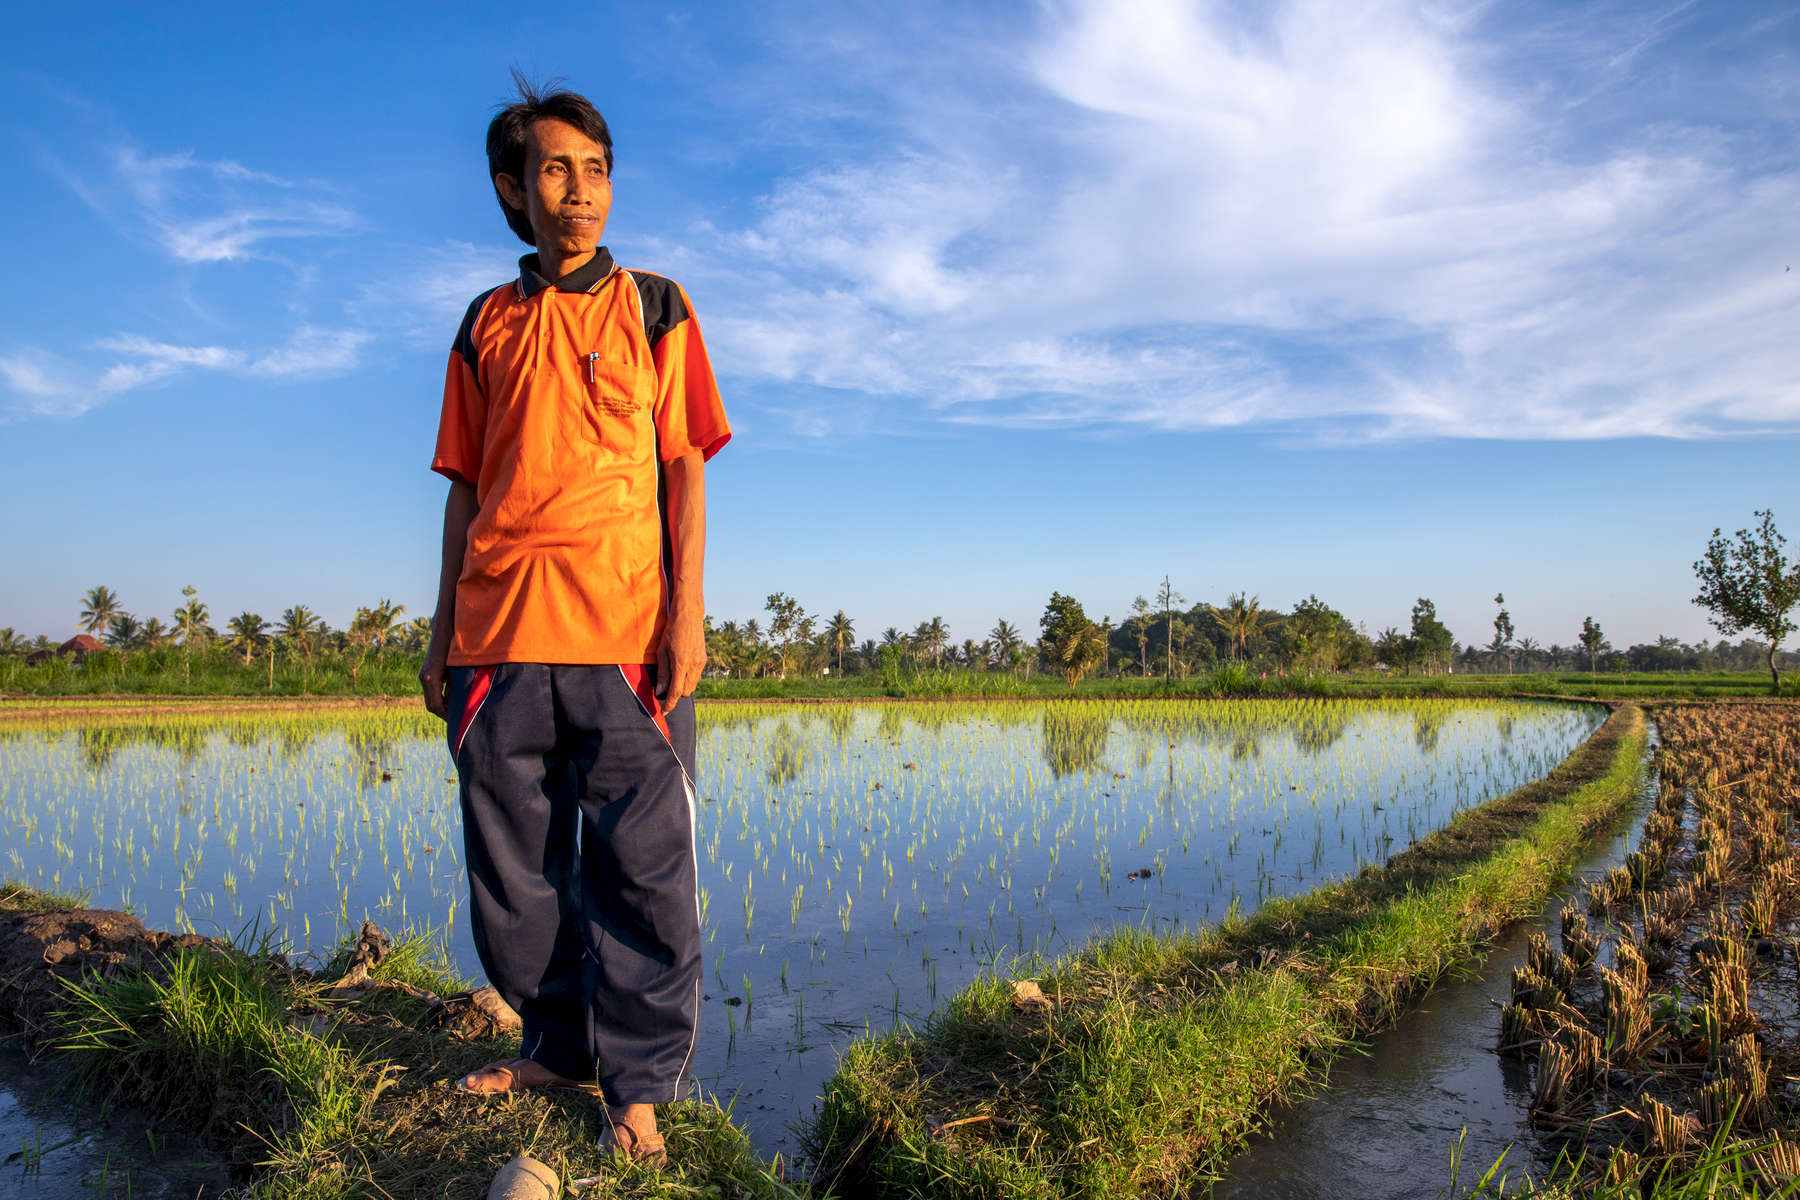 """Pak Sahwil, 42,  stands in his fields. He is a rice farmer on Lombok in eastern Indonesia. Mercy Corps is helping him and the 60 other farmers in his farmers group learn how to grow stronger, heartier crops in the face of worsening drought.Lombok is extremely vulnerable to climate change, with shorter rainy seasons and longer dry seasons that put precious harvests at risk.A lifelong farmer on Lombok—and the son of rice farmers—Pak Sahwil can recall the dry seasons as far back as 15 years. As he gets older, he worries about longer droughts causing harvest failure. """"Sometimes, climate change causes failure. What I feel the most is a long dry season,"""" he says.On Lombok, the dry season is now regularly starting a month earlier and lasting a month longer, leading to dangerous water shortages for farmers. """"I'm very worried. Not just for next year, but even for this year. Accessing water is becoming difficult,"""" Pak Sahwil says.Mercy Corps has helped Pak Sahwil and the farmers group he mentors endure drought with better farming practices and business training. """"Our objective as farmers is to increase our production. Because the Mercy Corps mission is the same as ours, we cooperate. This is a good opportunity, in my opinion,"""" he says.Mercy Corps trains farmers like Pak Sahwil to organize local farmers groups where farmers work together and support each other. They also learn to start agribusinesses to supplement their income.Pak Sahwil also works for the governmental agriculture agency. When he saw how Mercy Corps was improving local farmers, he extended the partnership to other districts. """"Because Mercy Corps is successful with my group, I share the knowledge with the group in this village,"""" he says."""